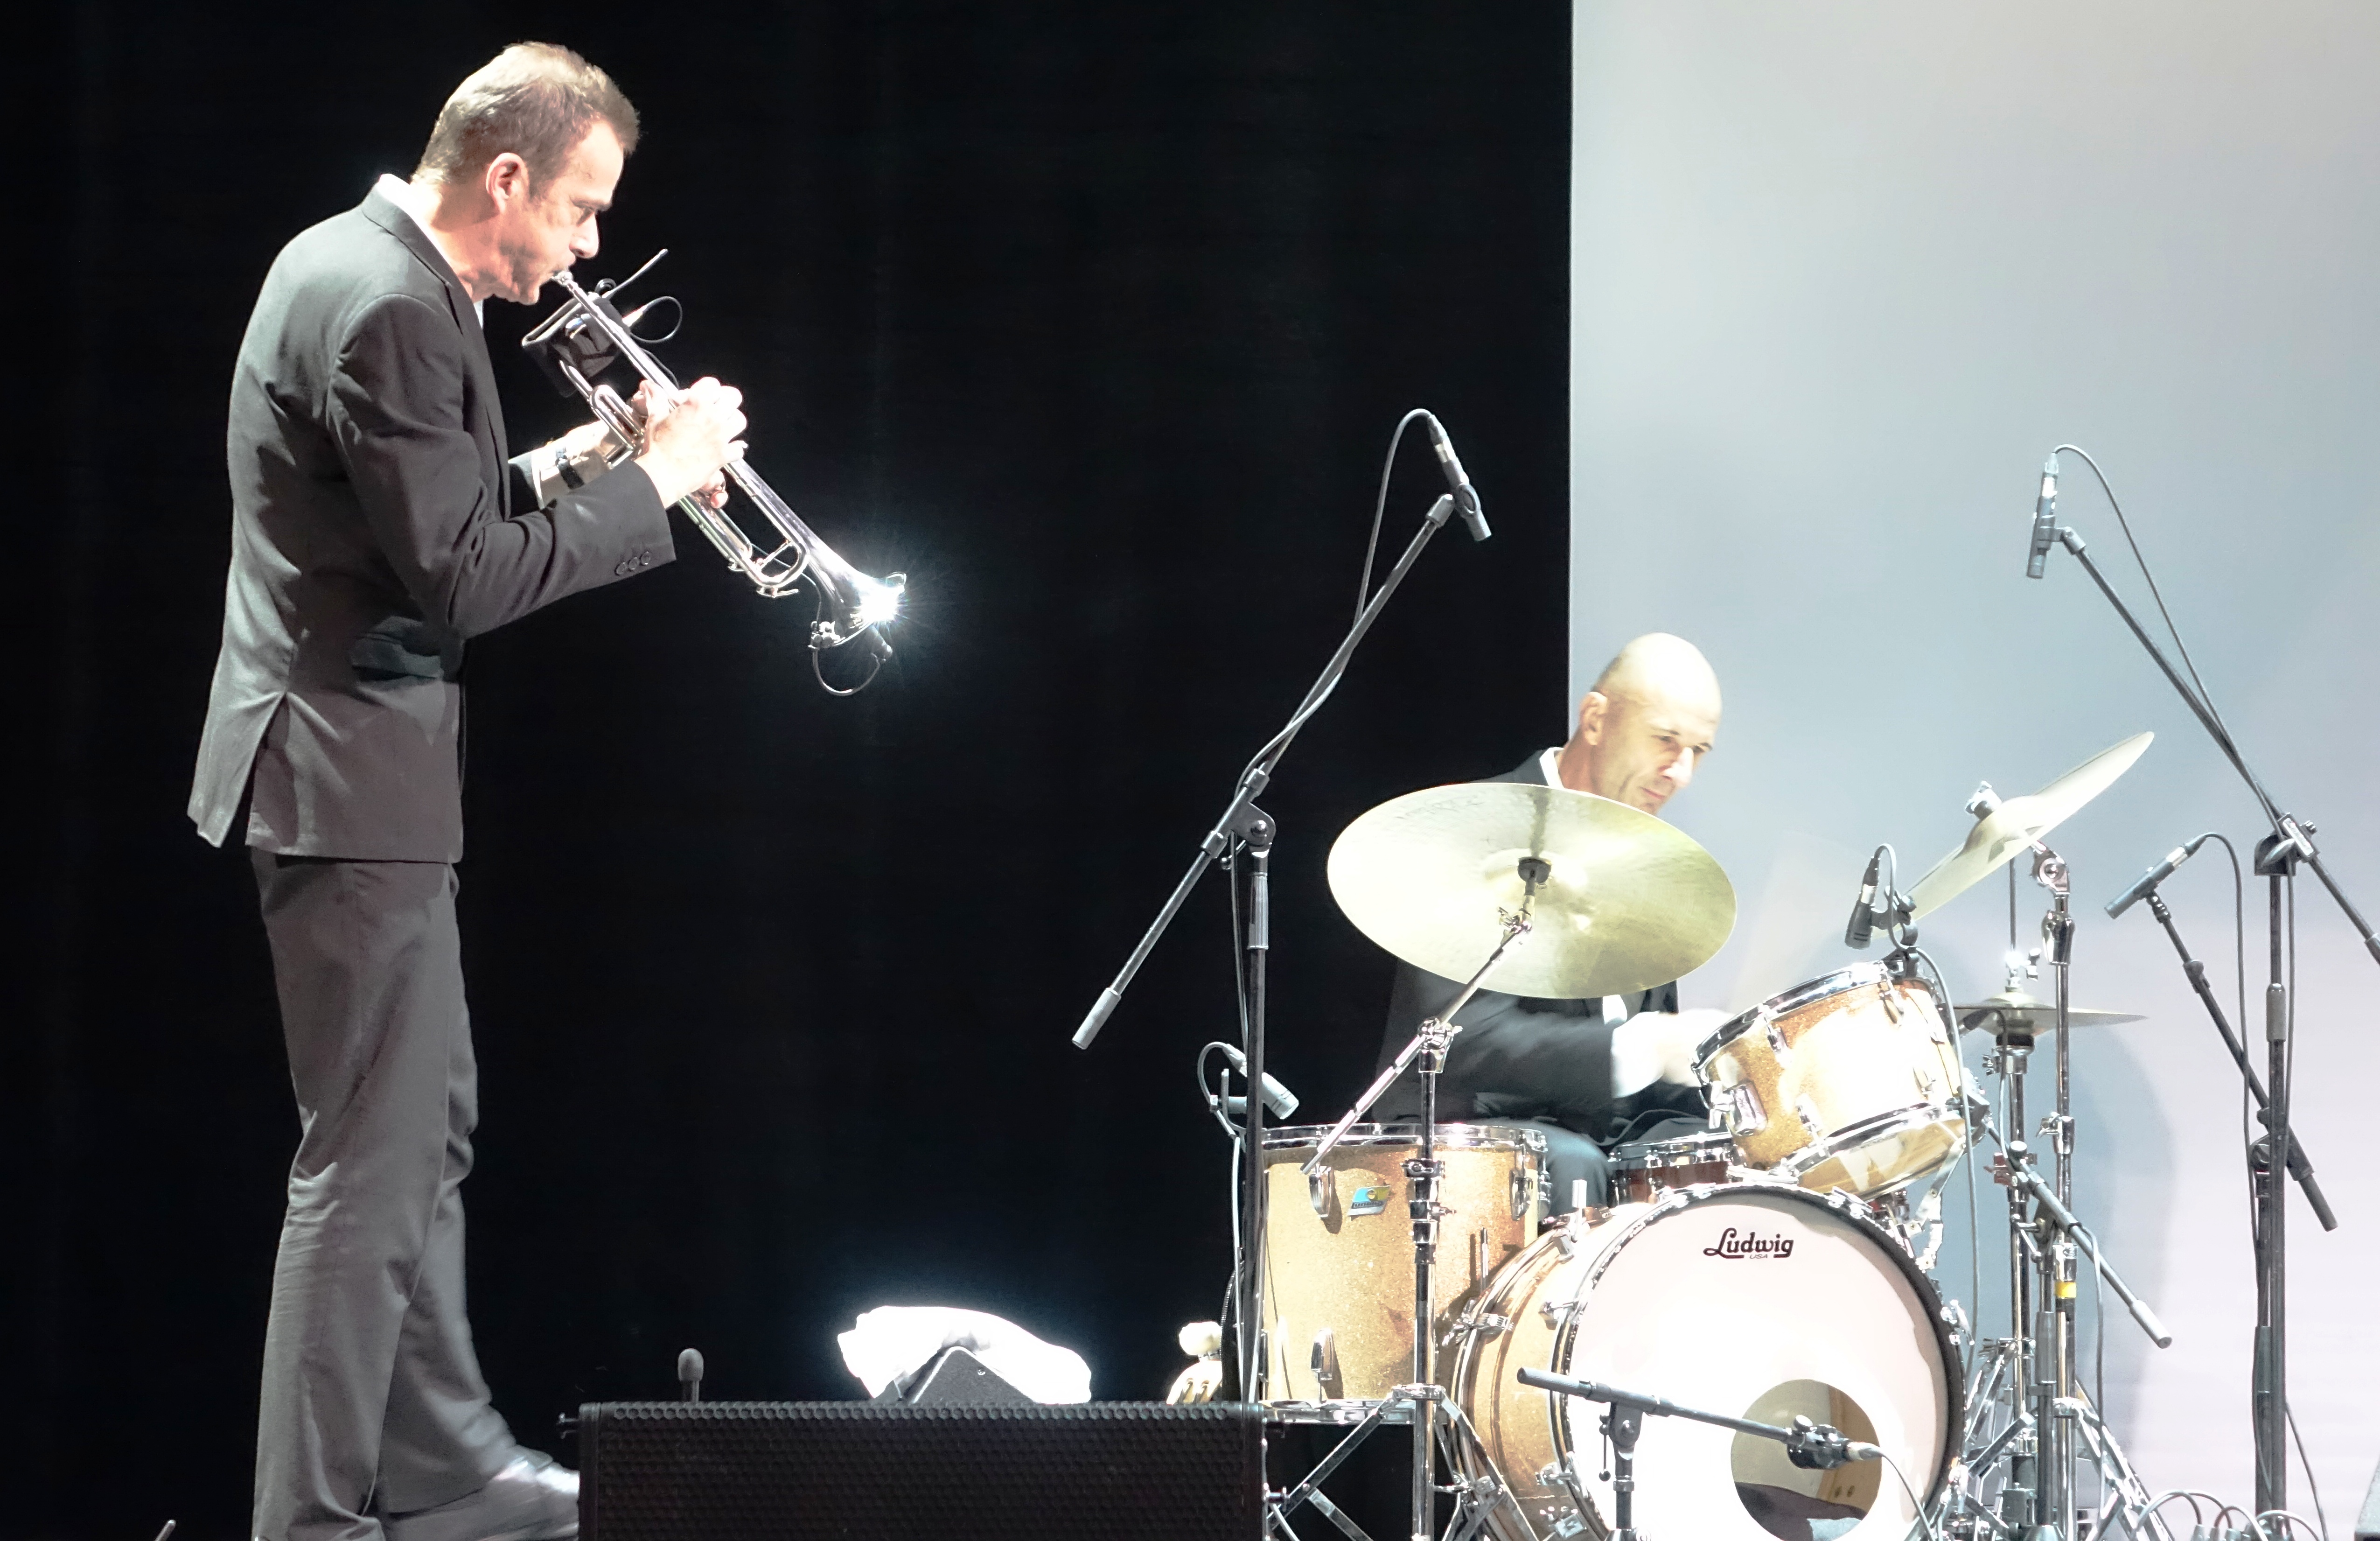 Pete Judge and Clive Deamer at the Vilnius Mama Jazz Festival in November 2017